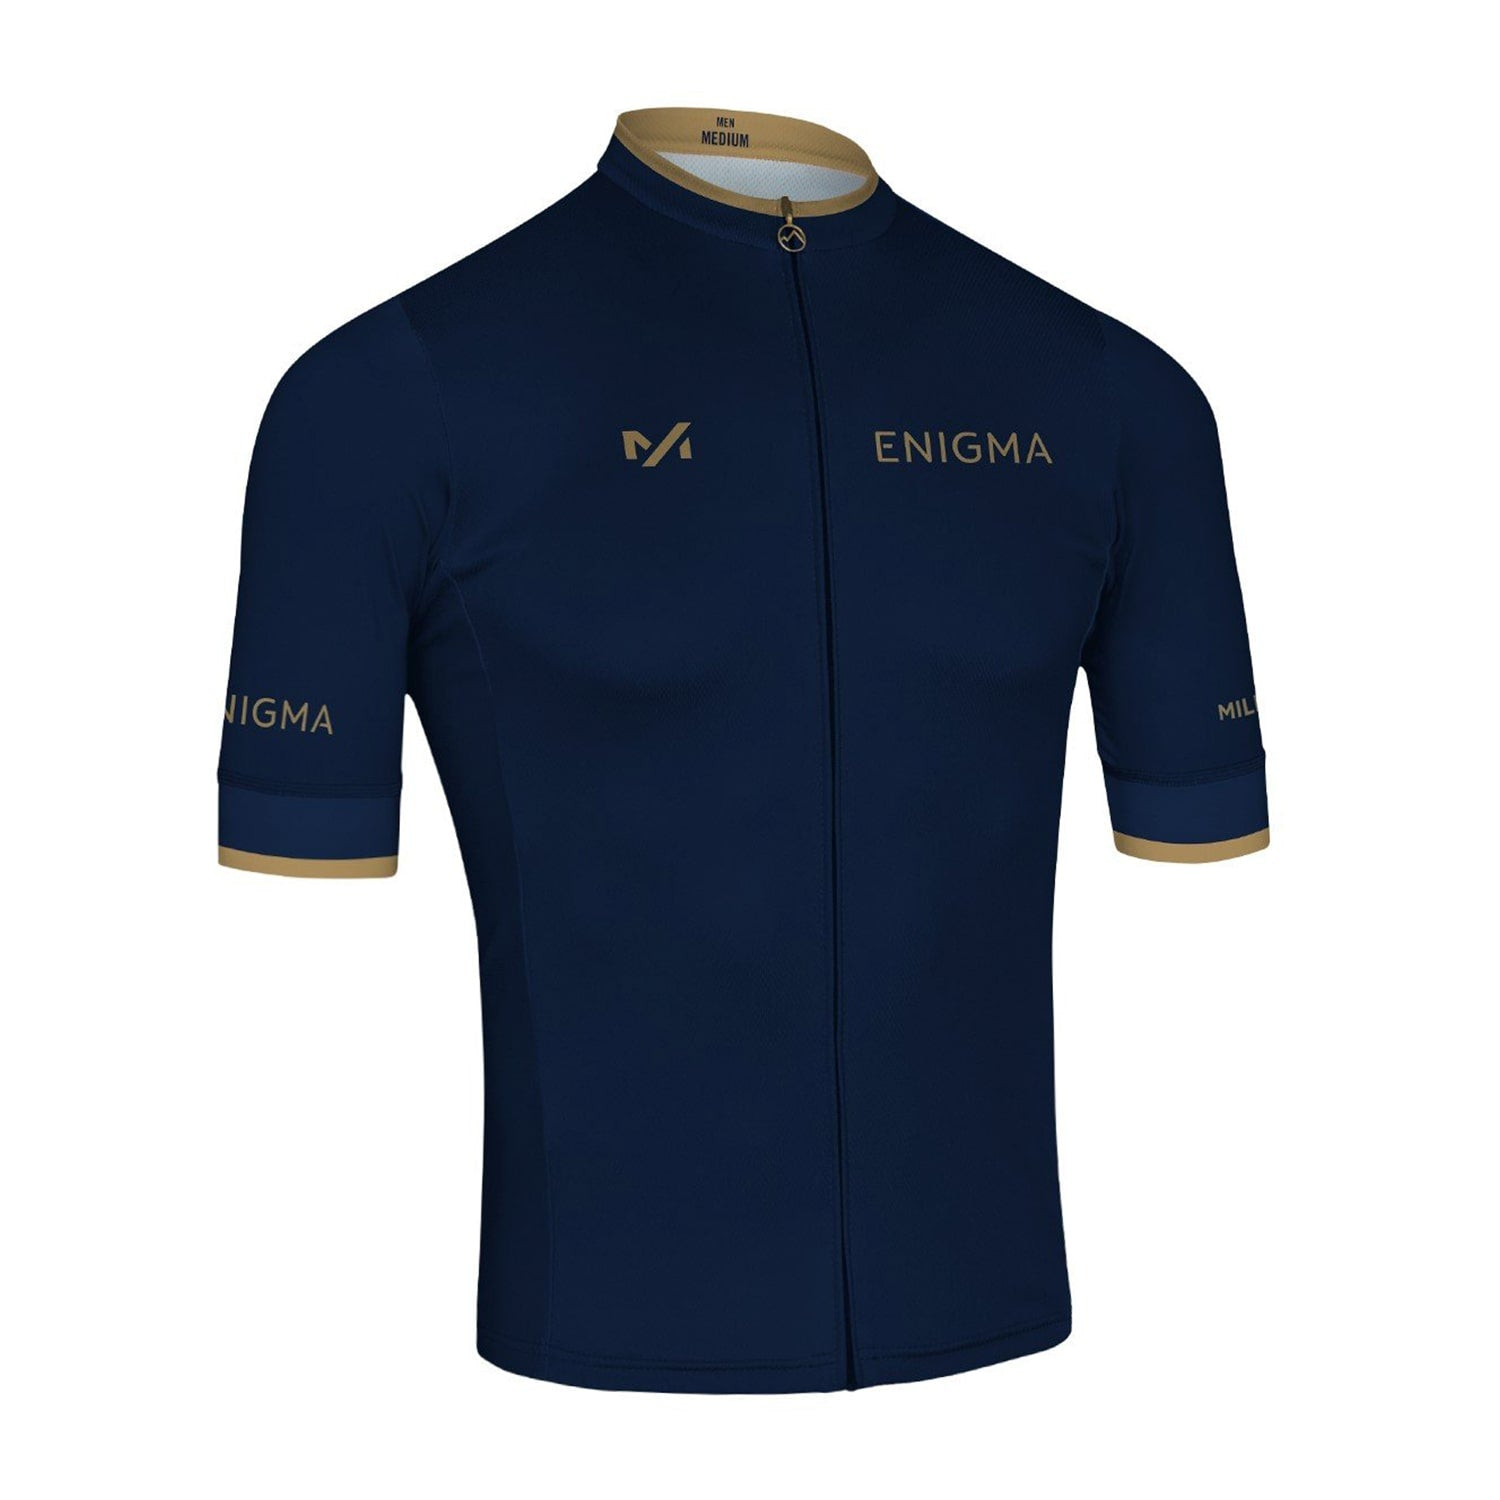 Enigma Classic Club Jersey - Navy Short Sleeve